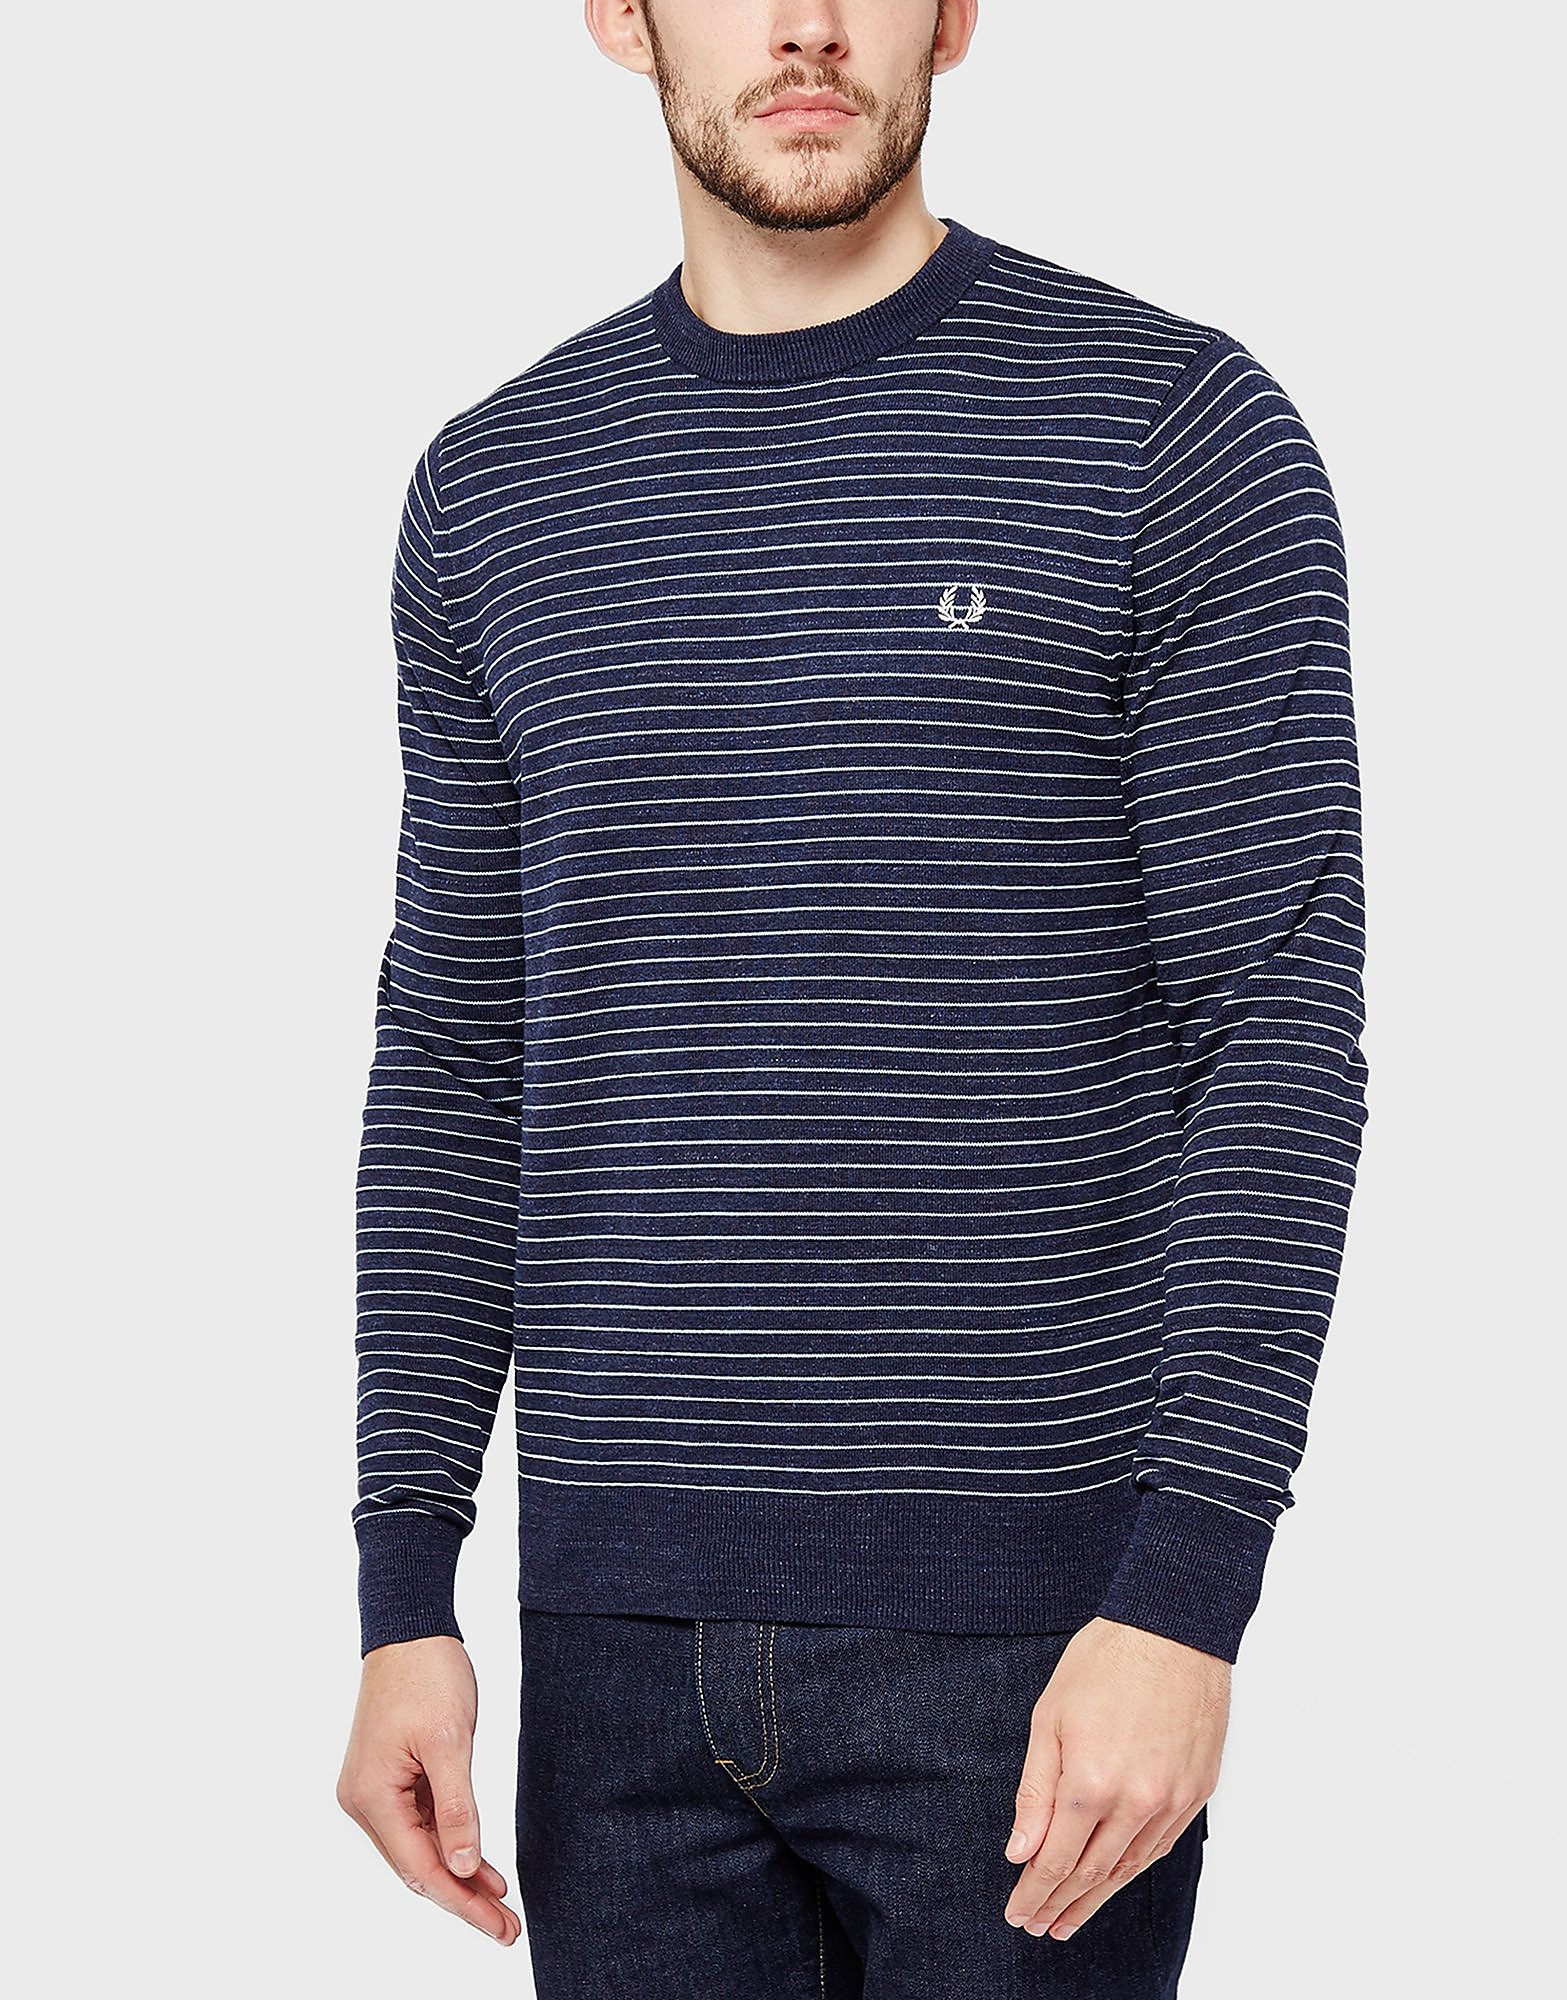 Fred Perry Striped Crew Sweatshirt